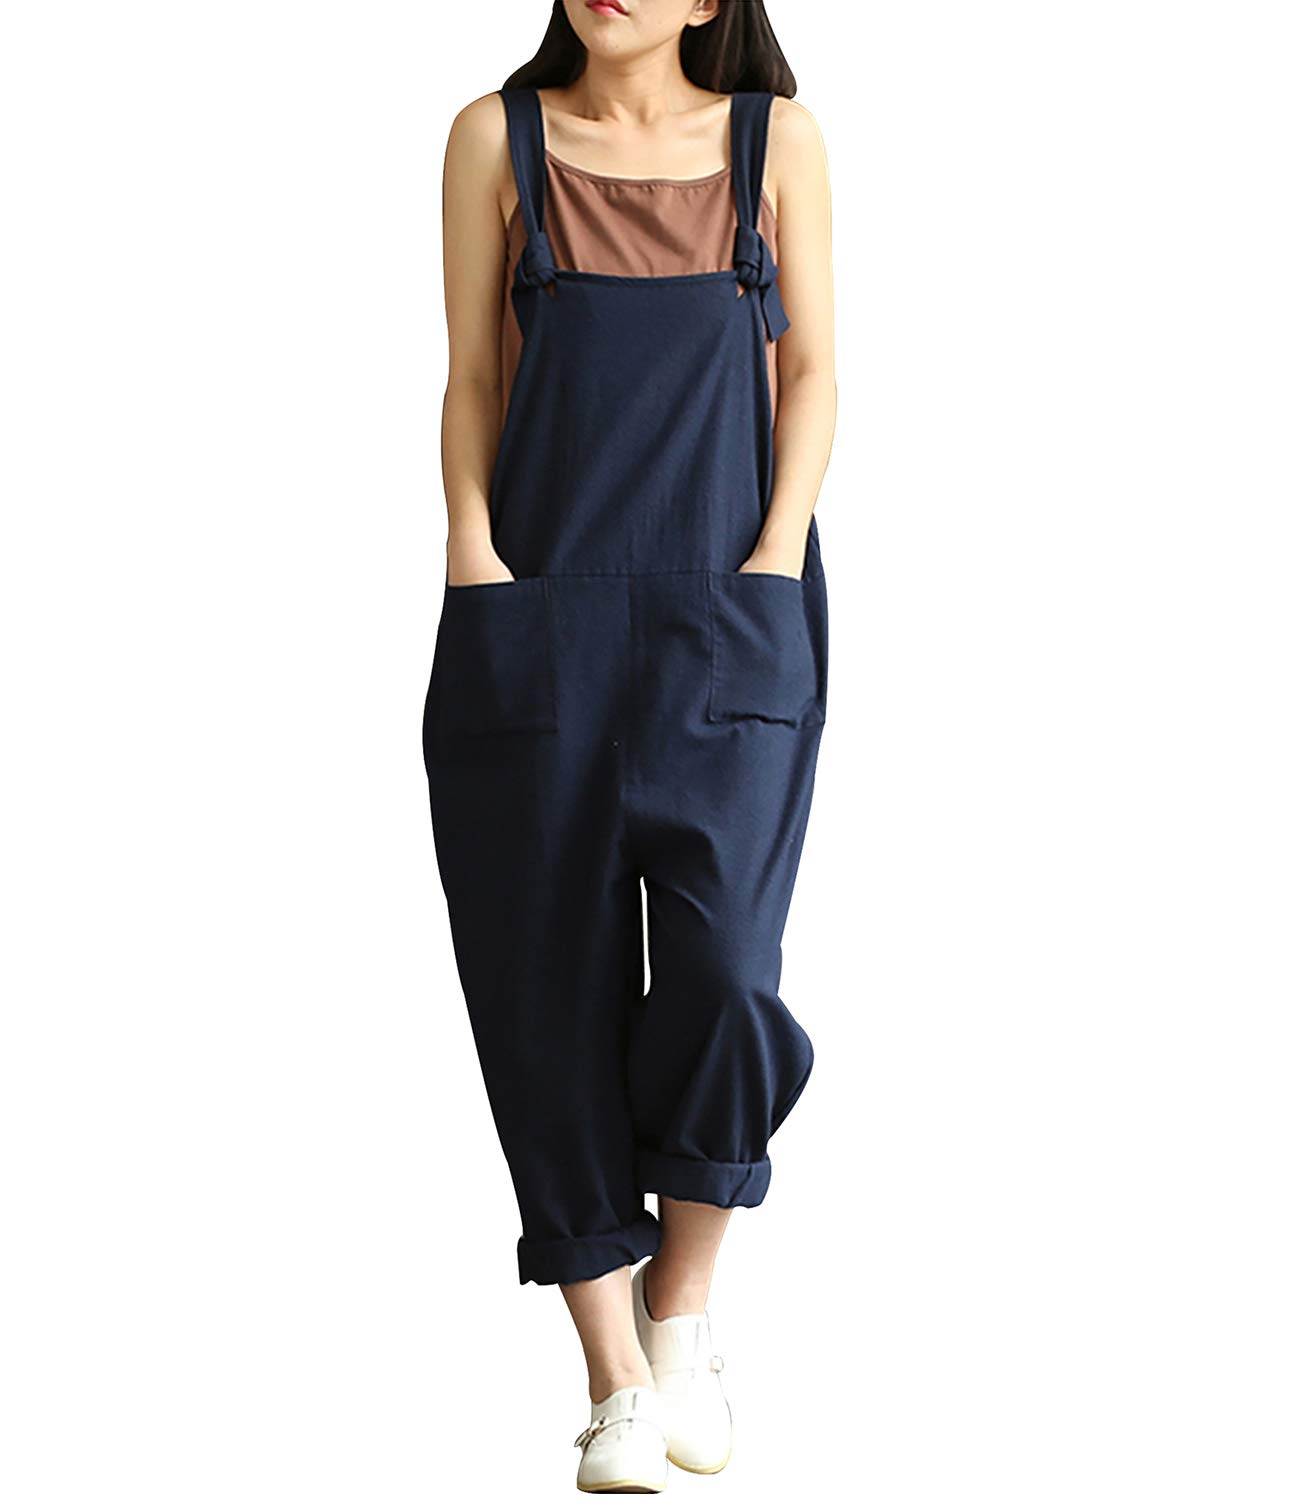 Lncropo Women Large Plus Size Baggy Linen Overalls Casual Wide Leg Pants Sleeveless Rompers Jumpsuit Vintage Haren Overalls (S, Blue)